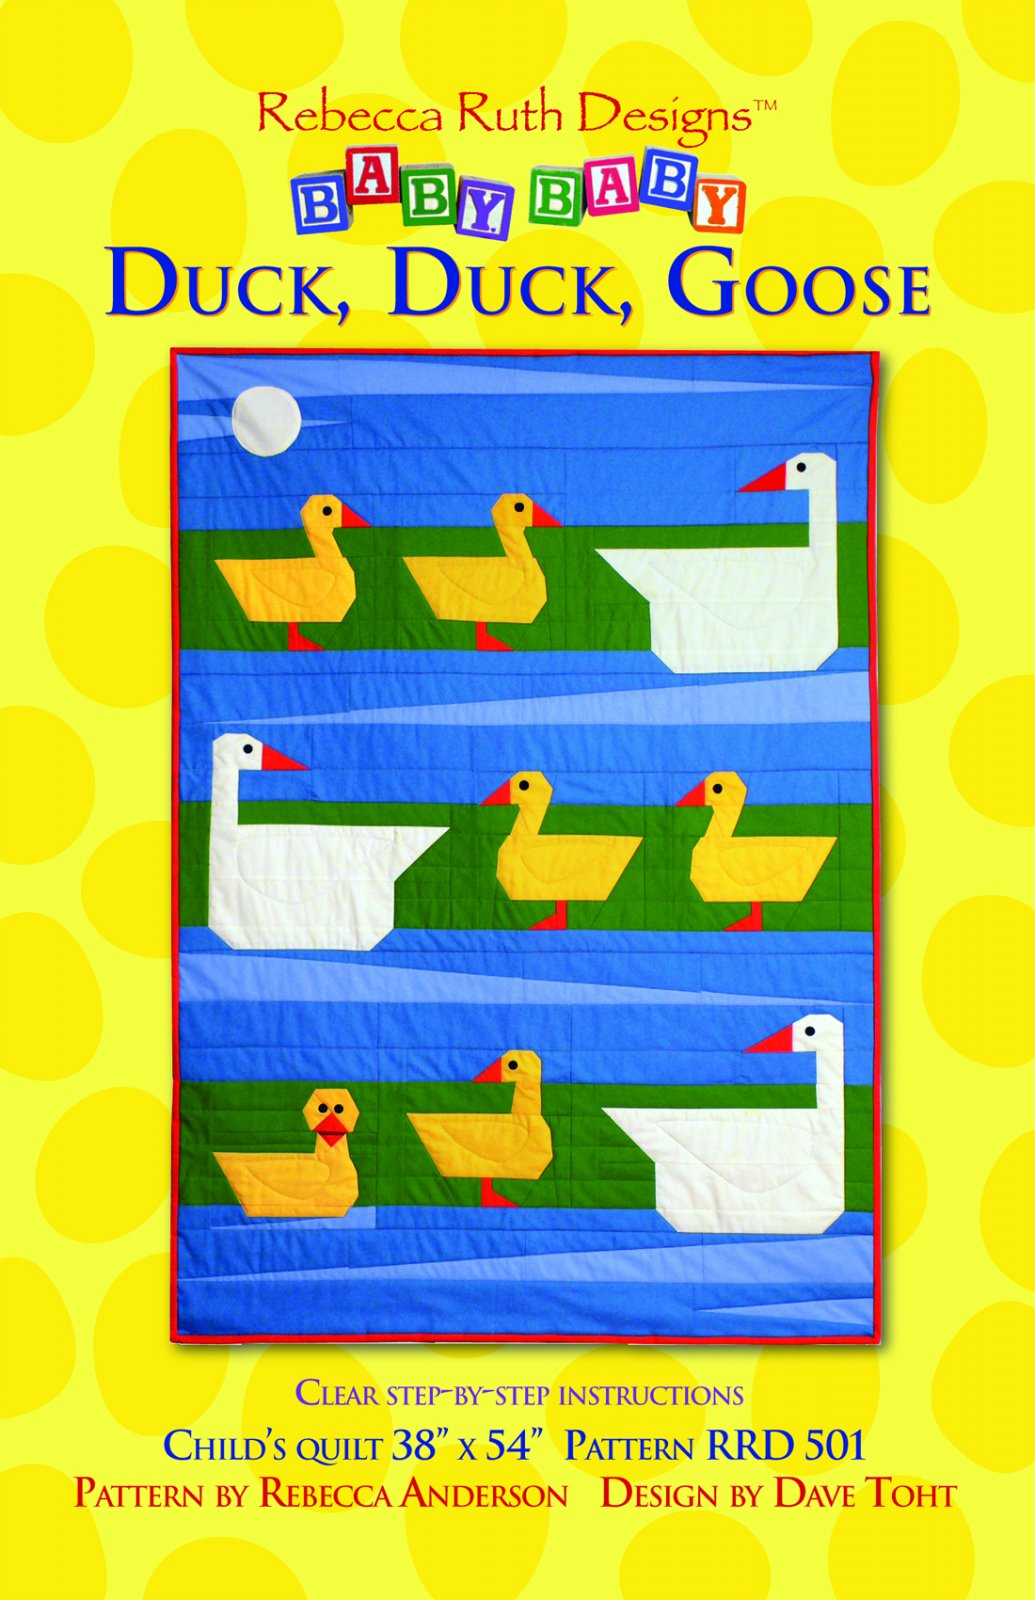 Duck, Duck, Goose by Rebecca Ruth Designs